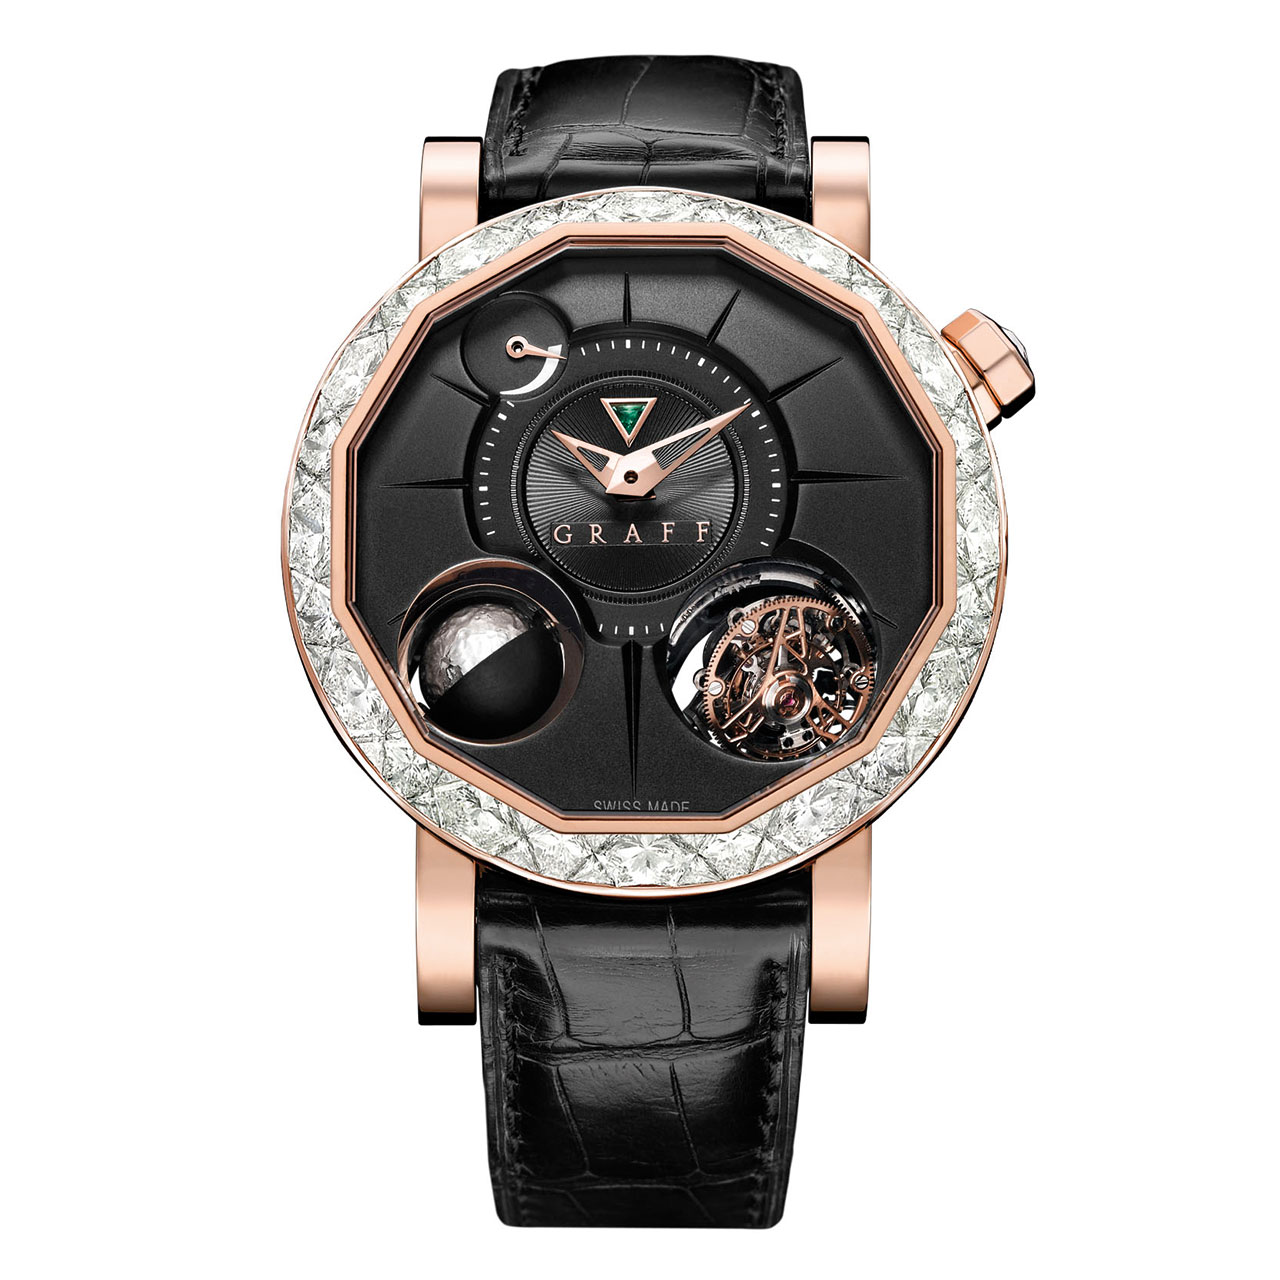 Graff Diamond GyroGraff Mechanical Hand-wound Watch